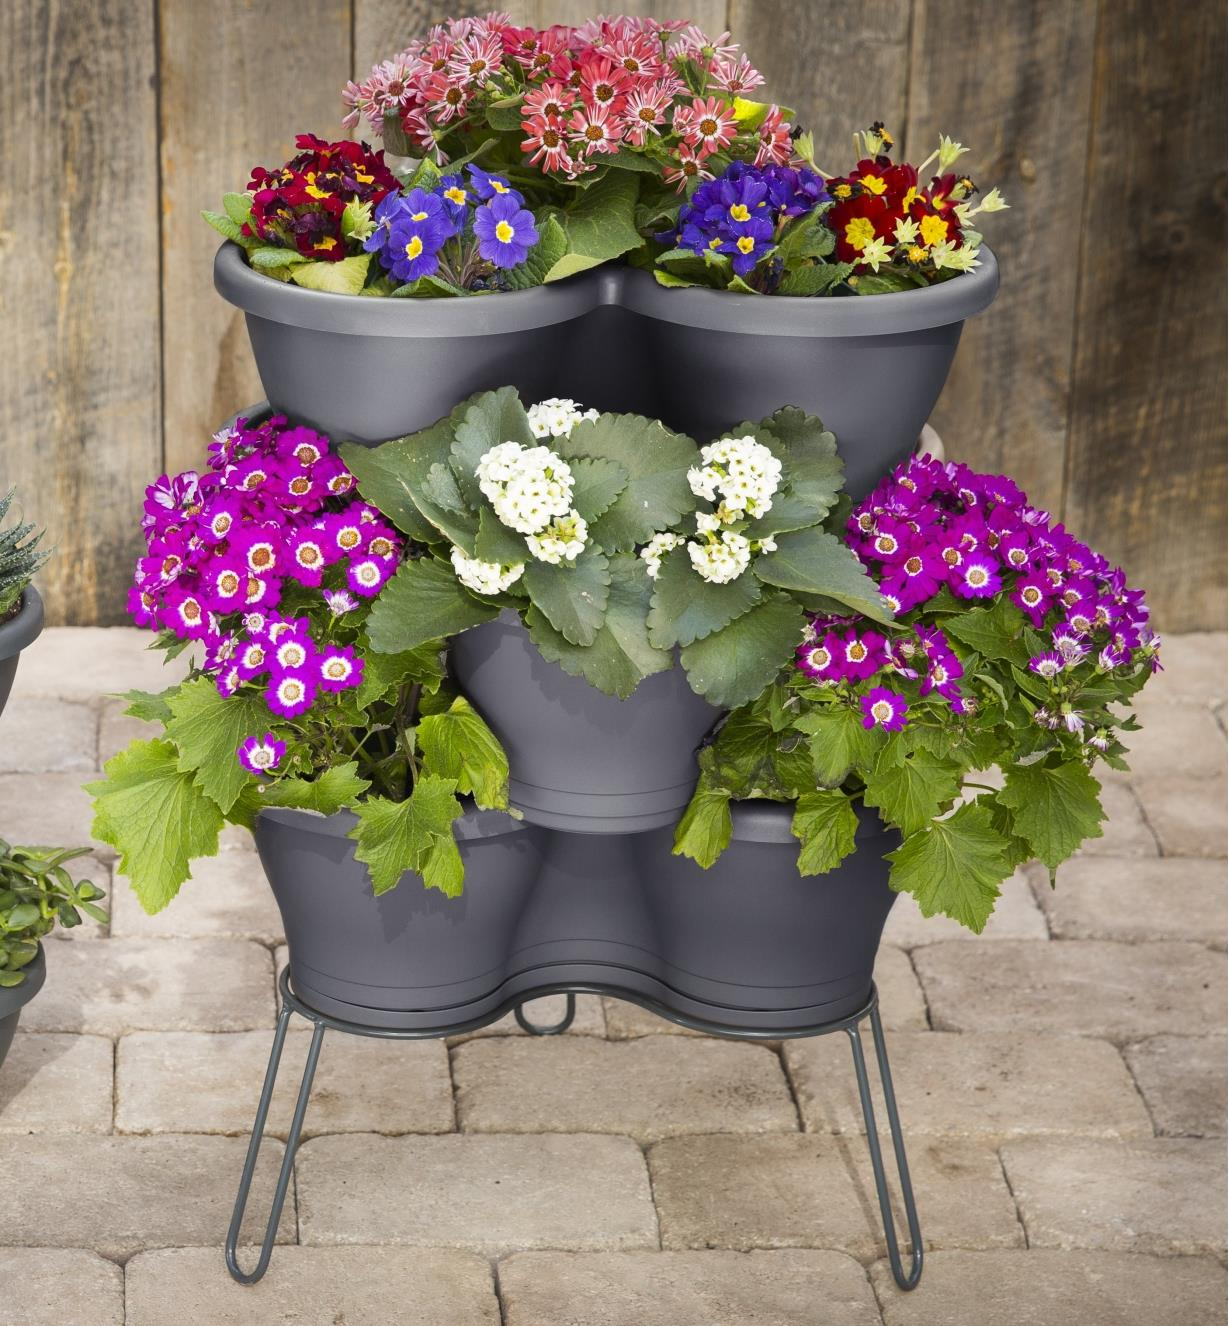 Stand supporting a flower planter with a catch tray